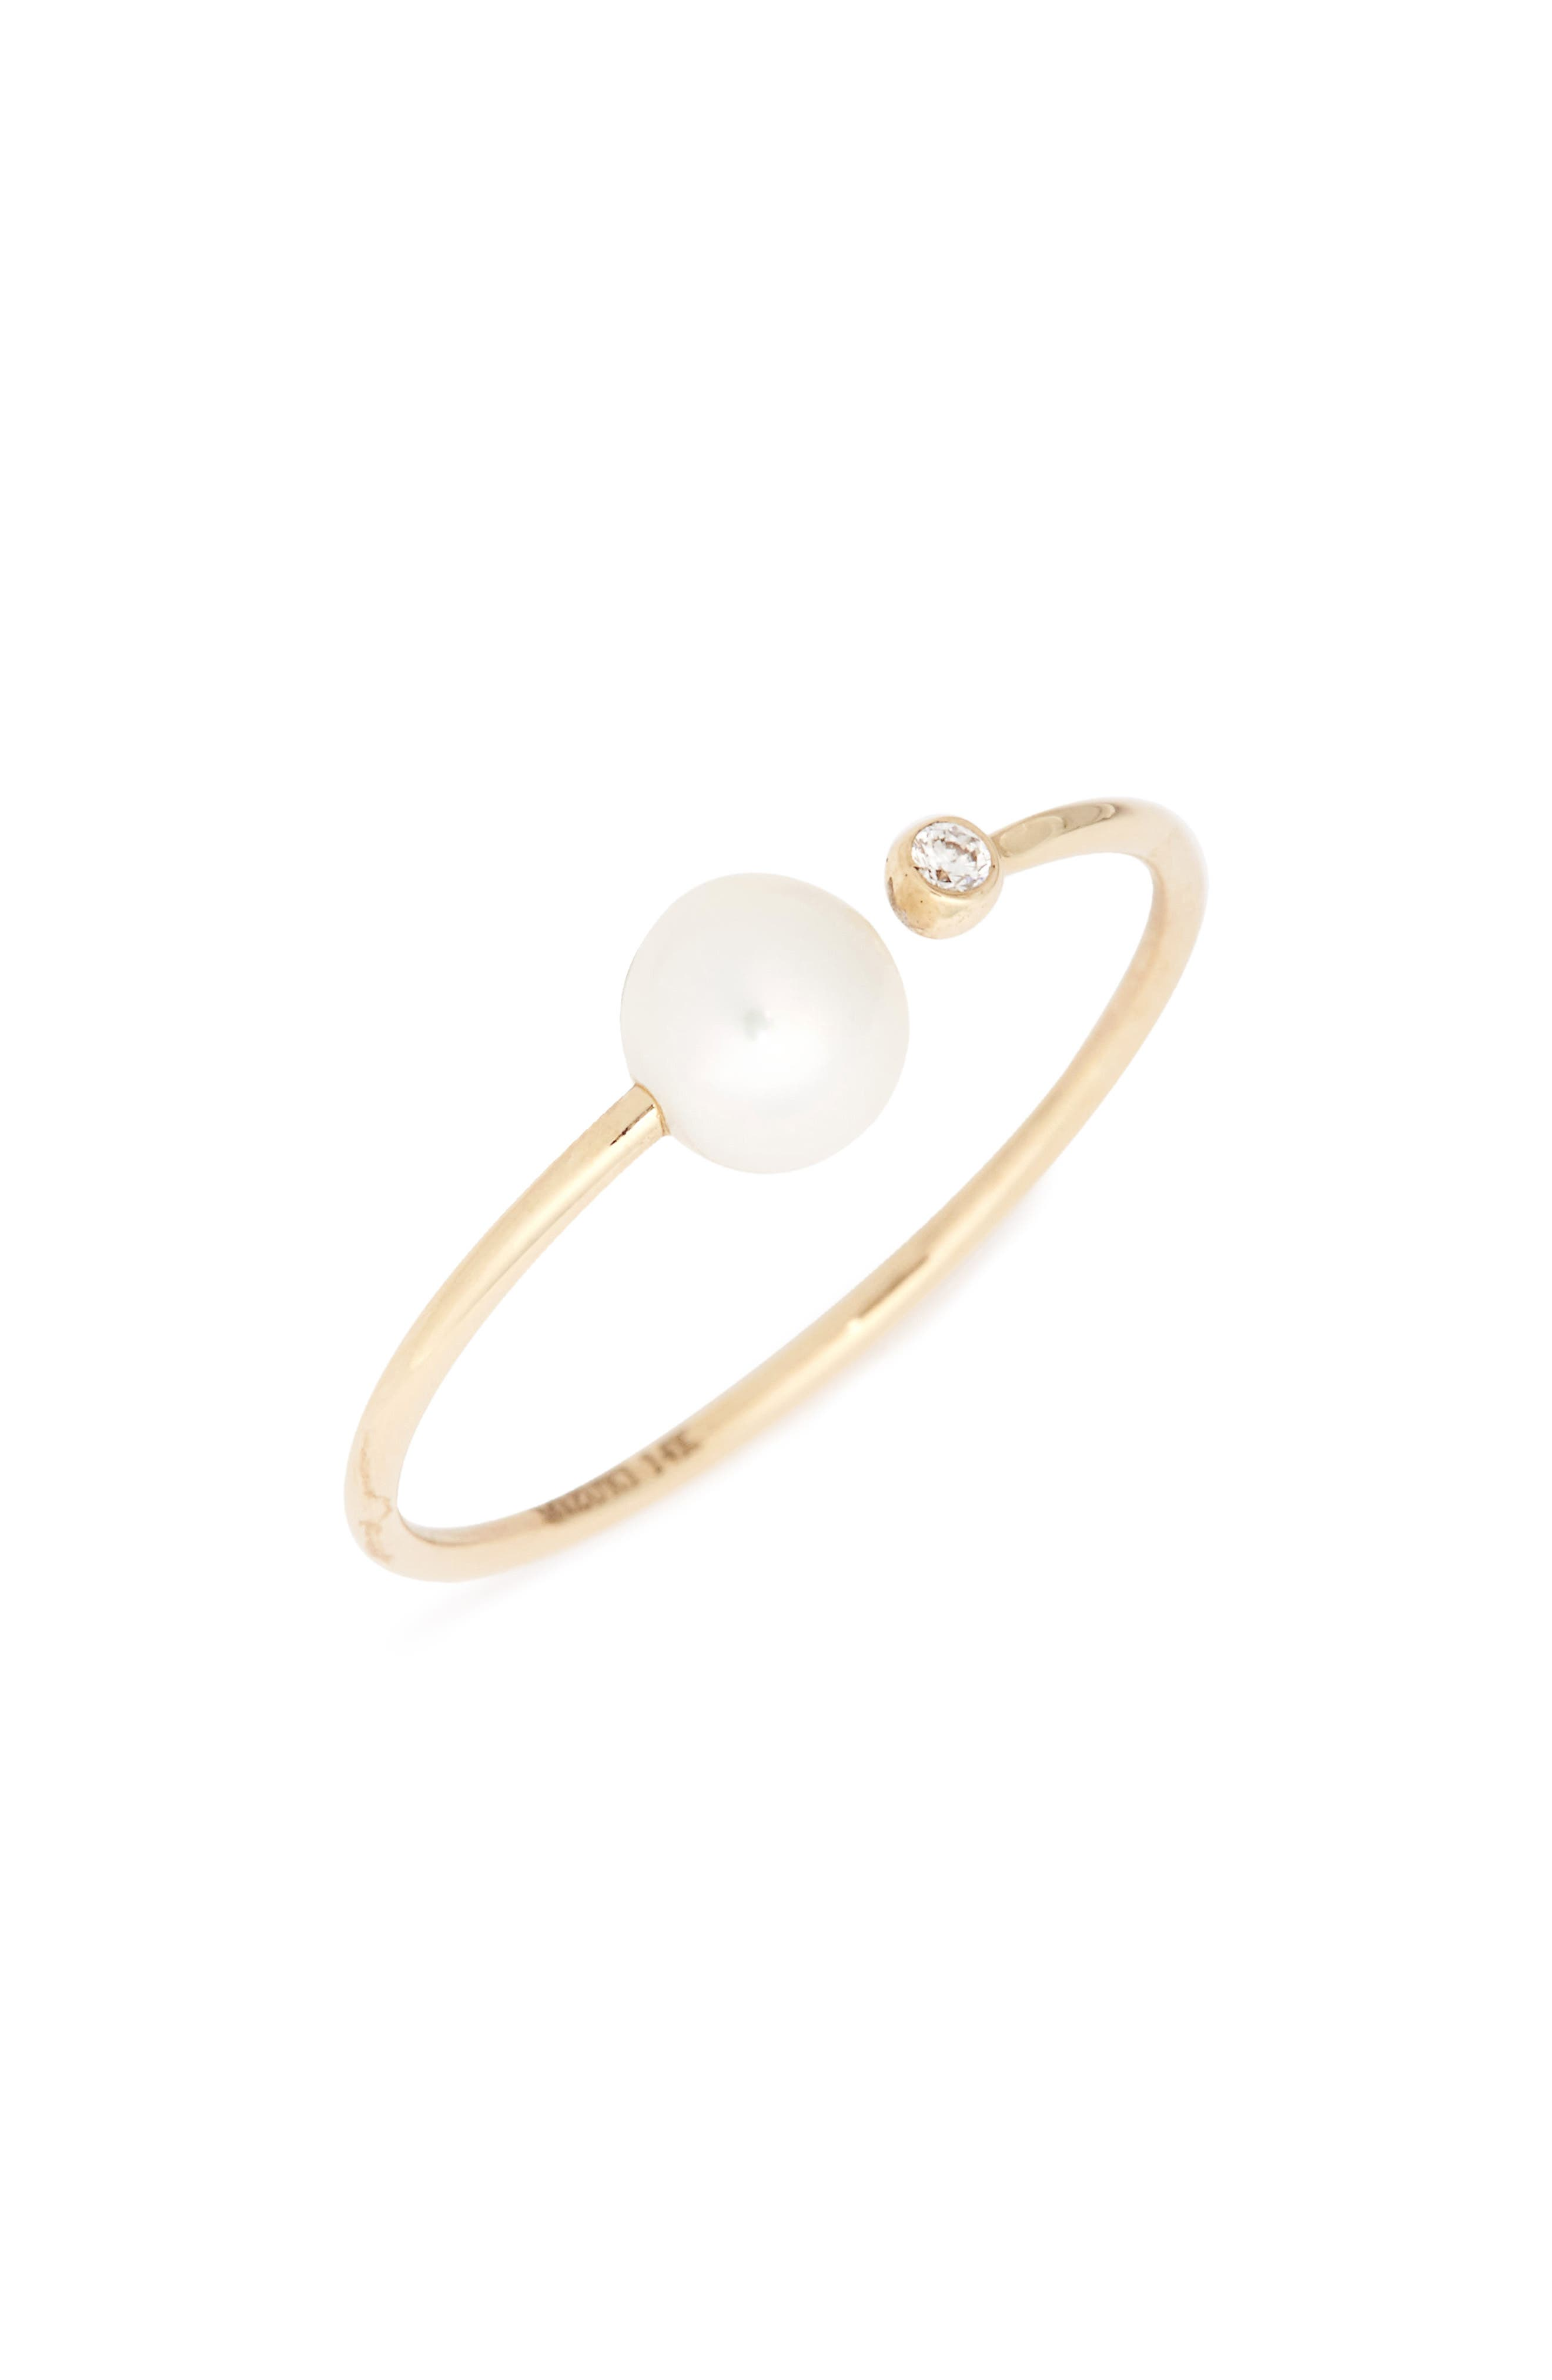 Sea of Beauty Pearl & Diamond Open Stack Ring,                         Main,                         color, YELLOW GOLD/ WHITE PEARL